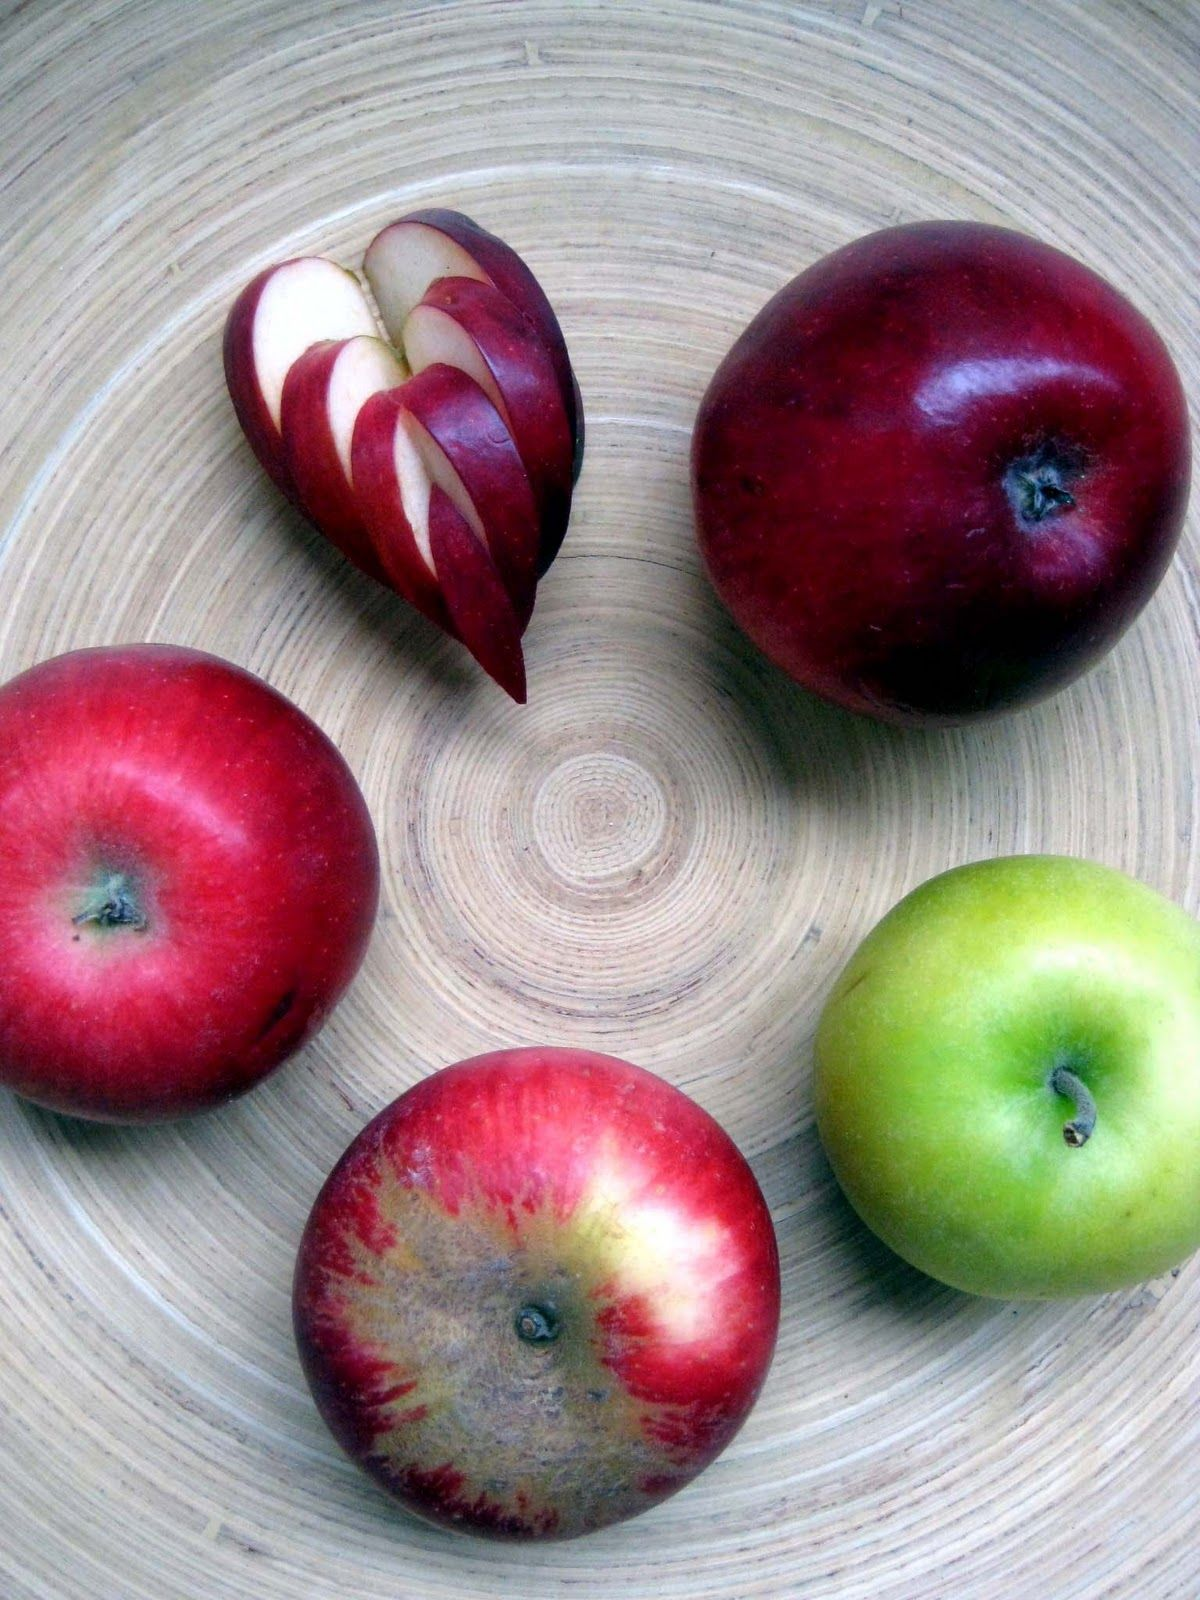 A nice way to use apple for decorating a plate.